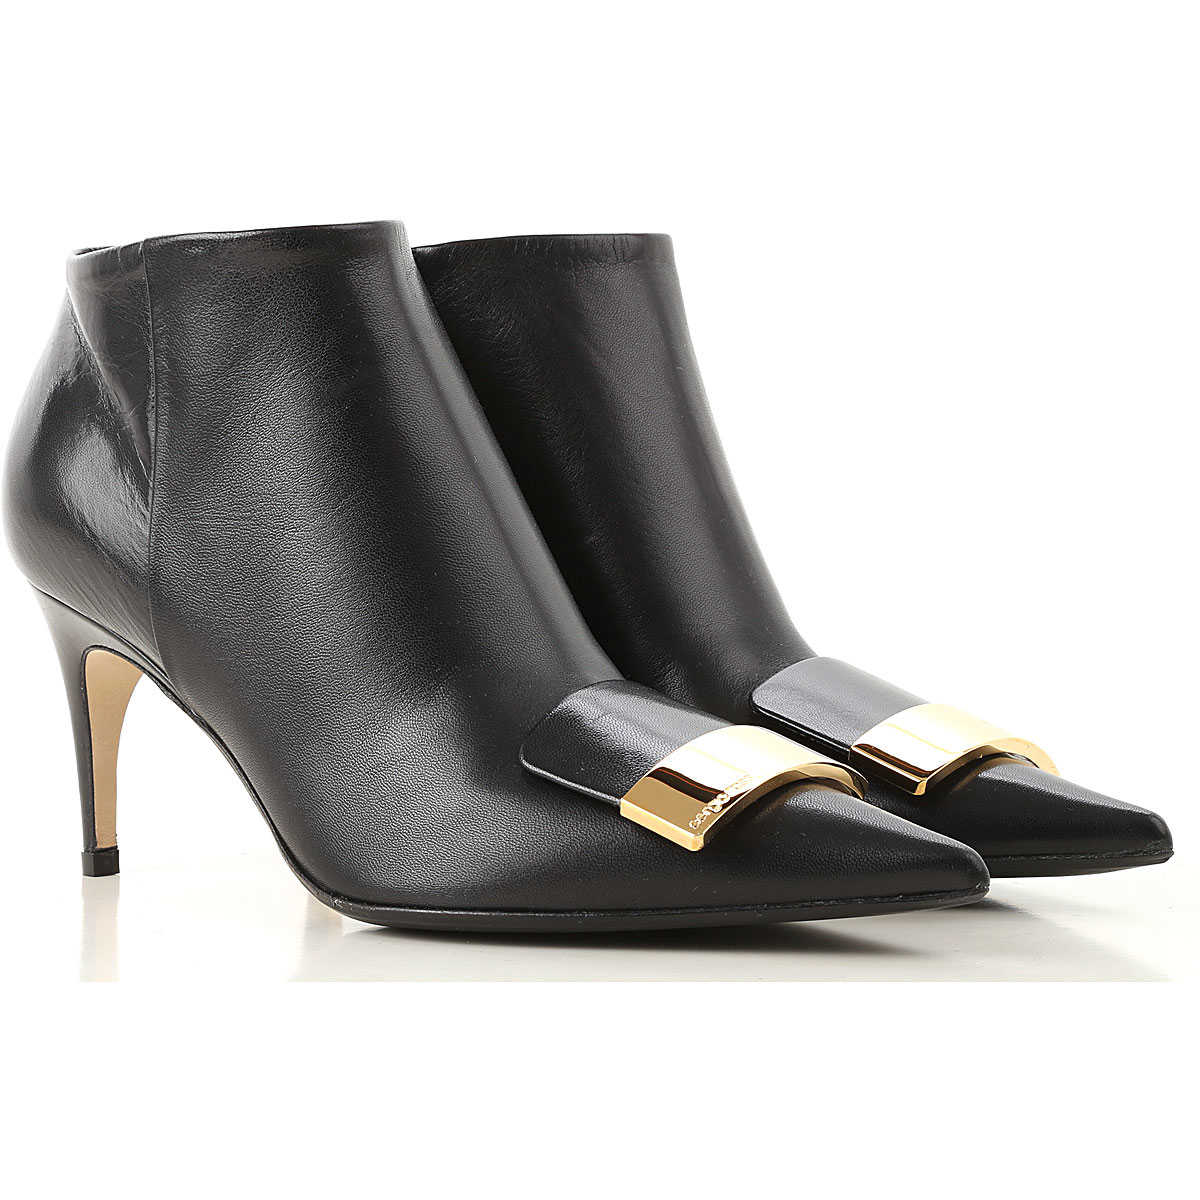 Sergio Rossi Boots for Women